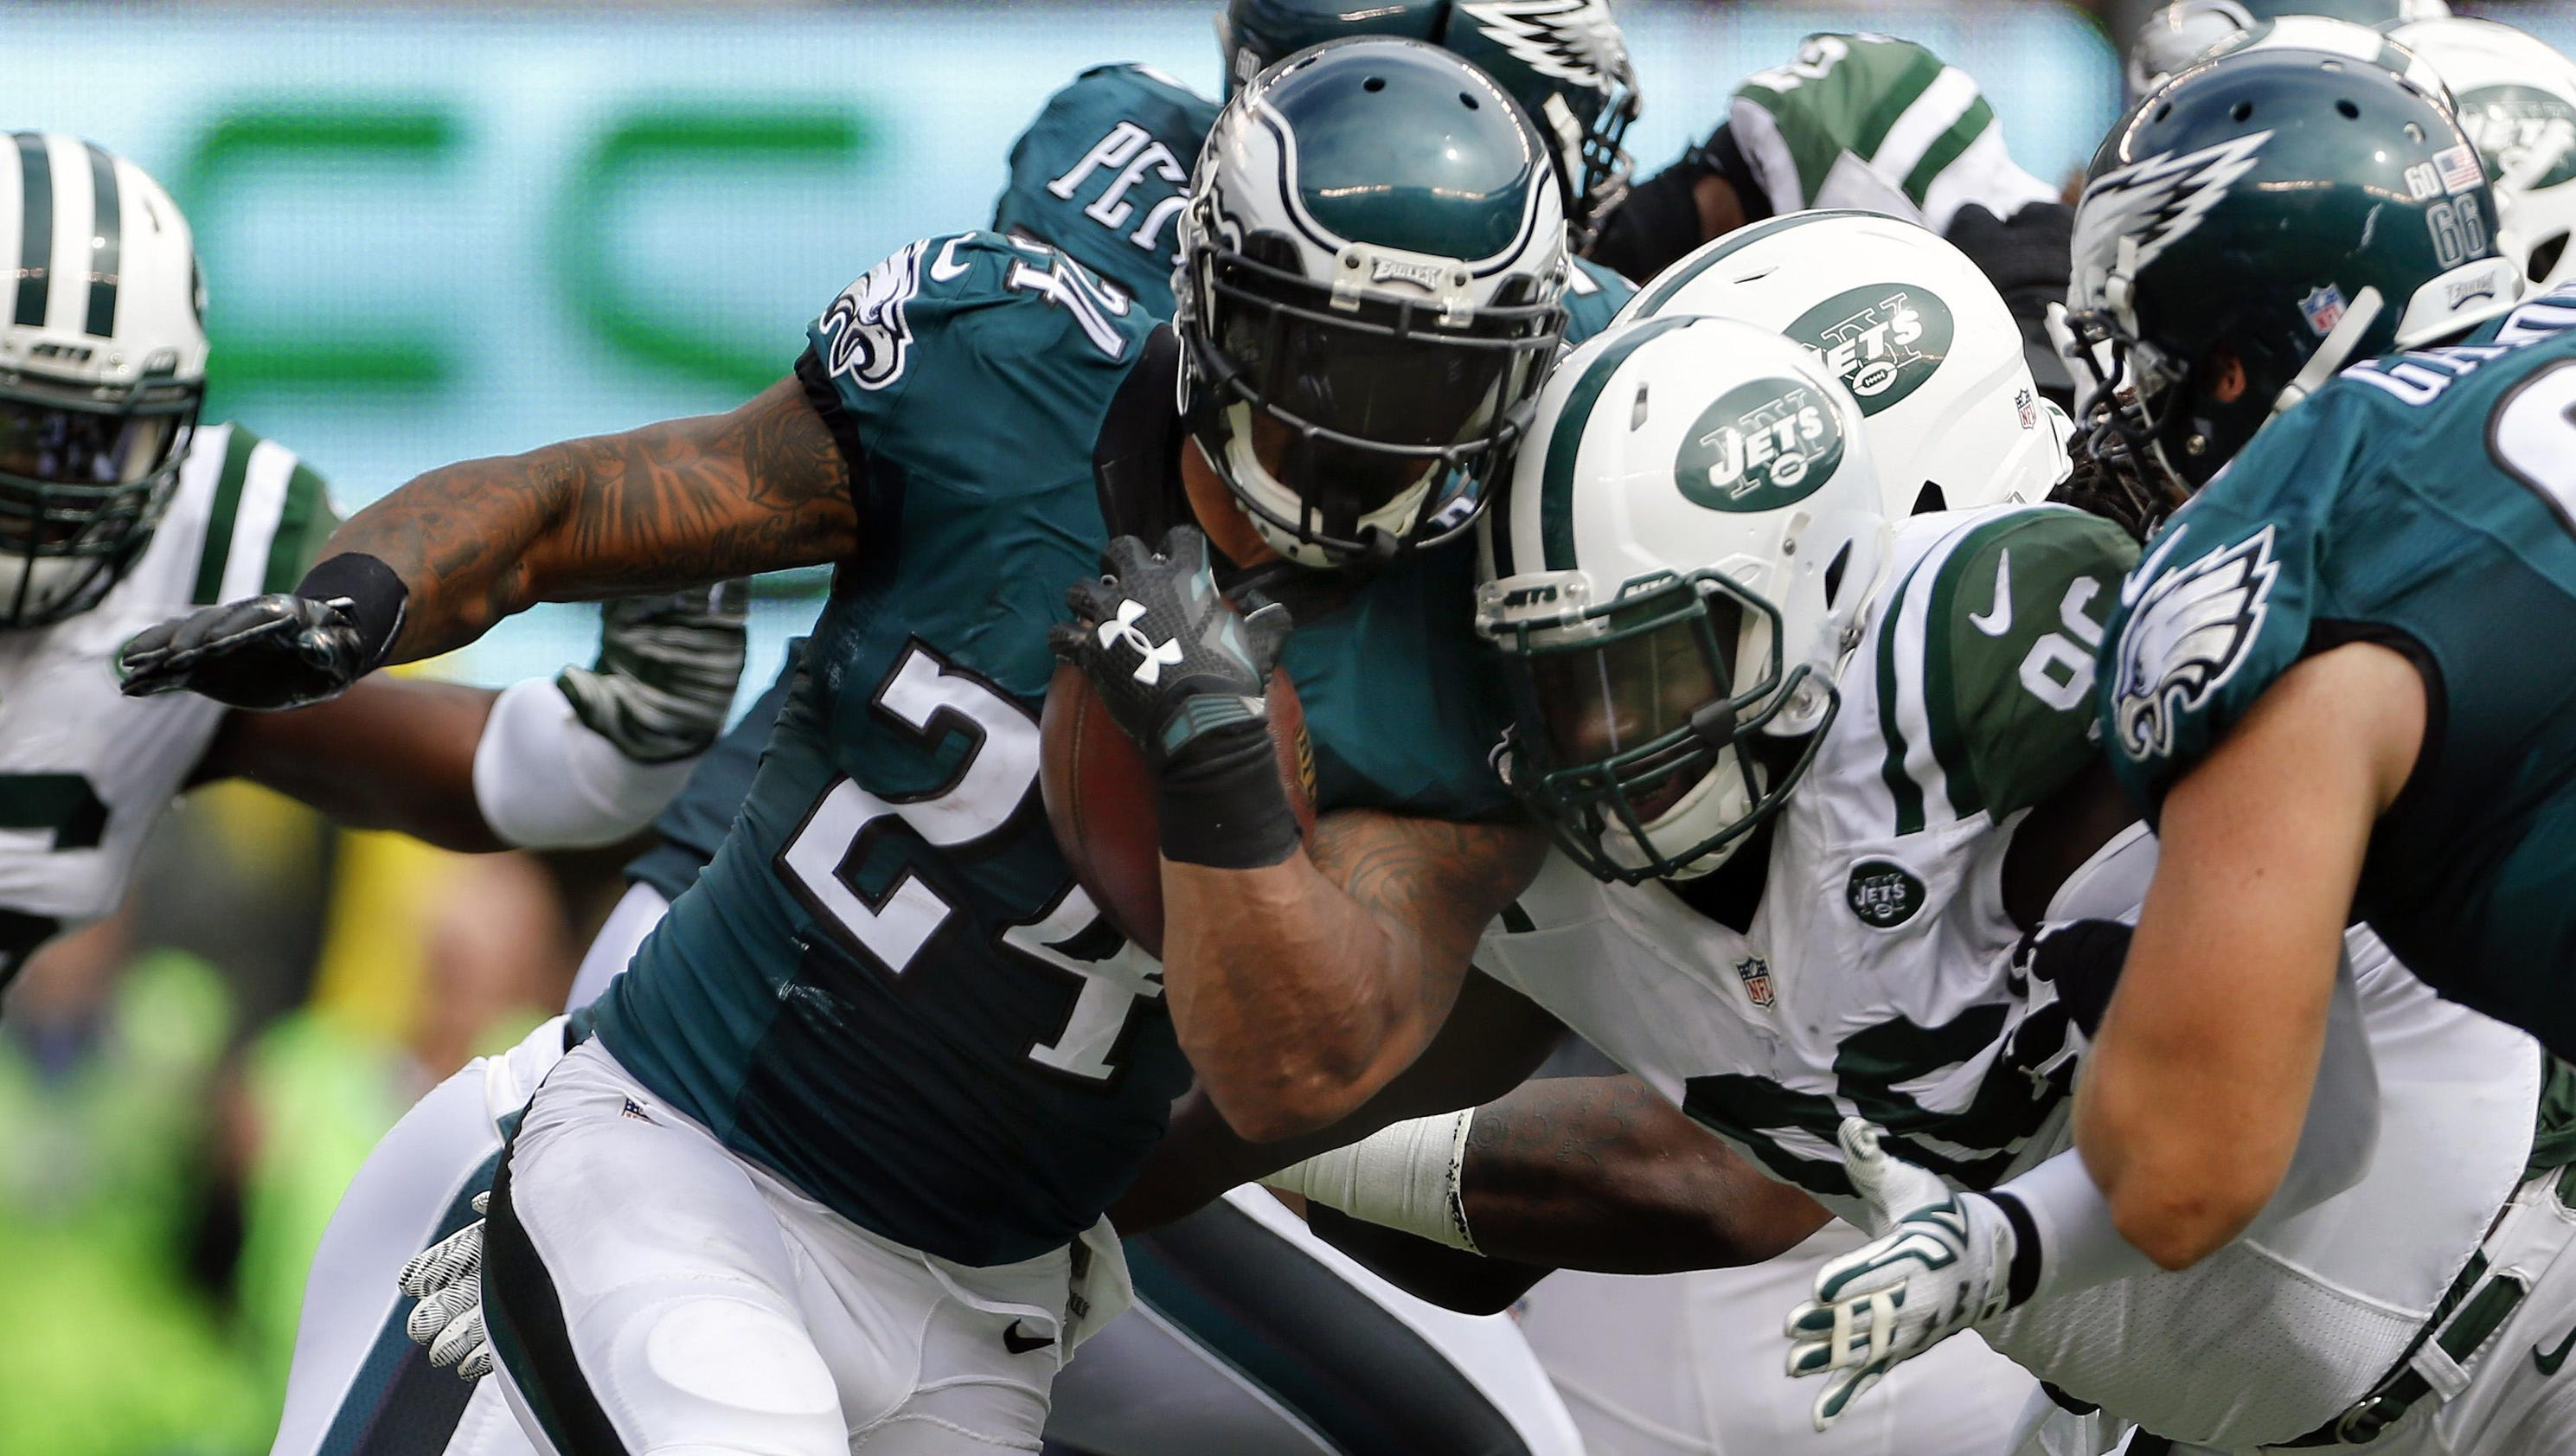 ... Jersey Herald - Linden football to retire number of Jets DL Wilkerson  ... 3e544e407